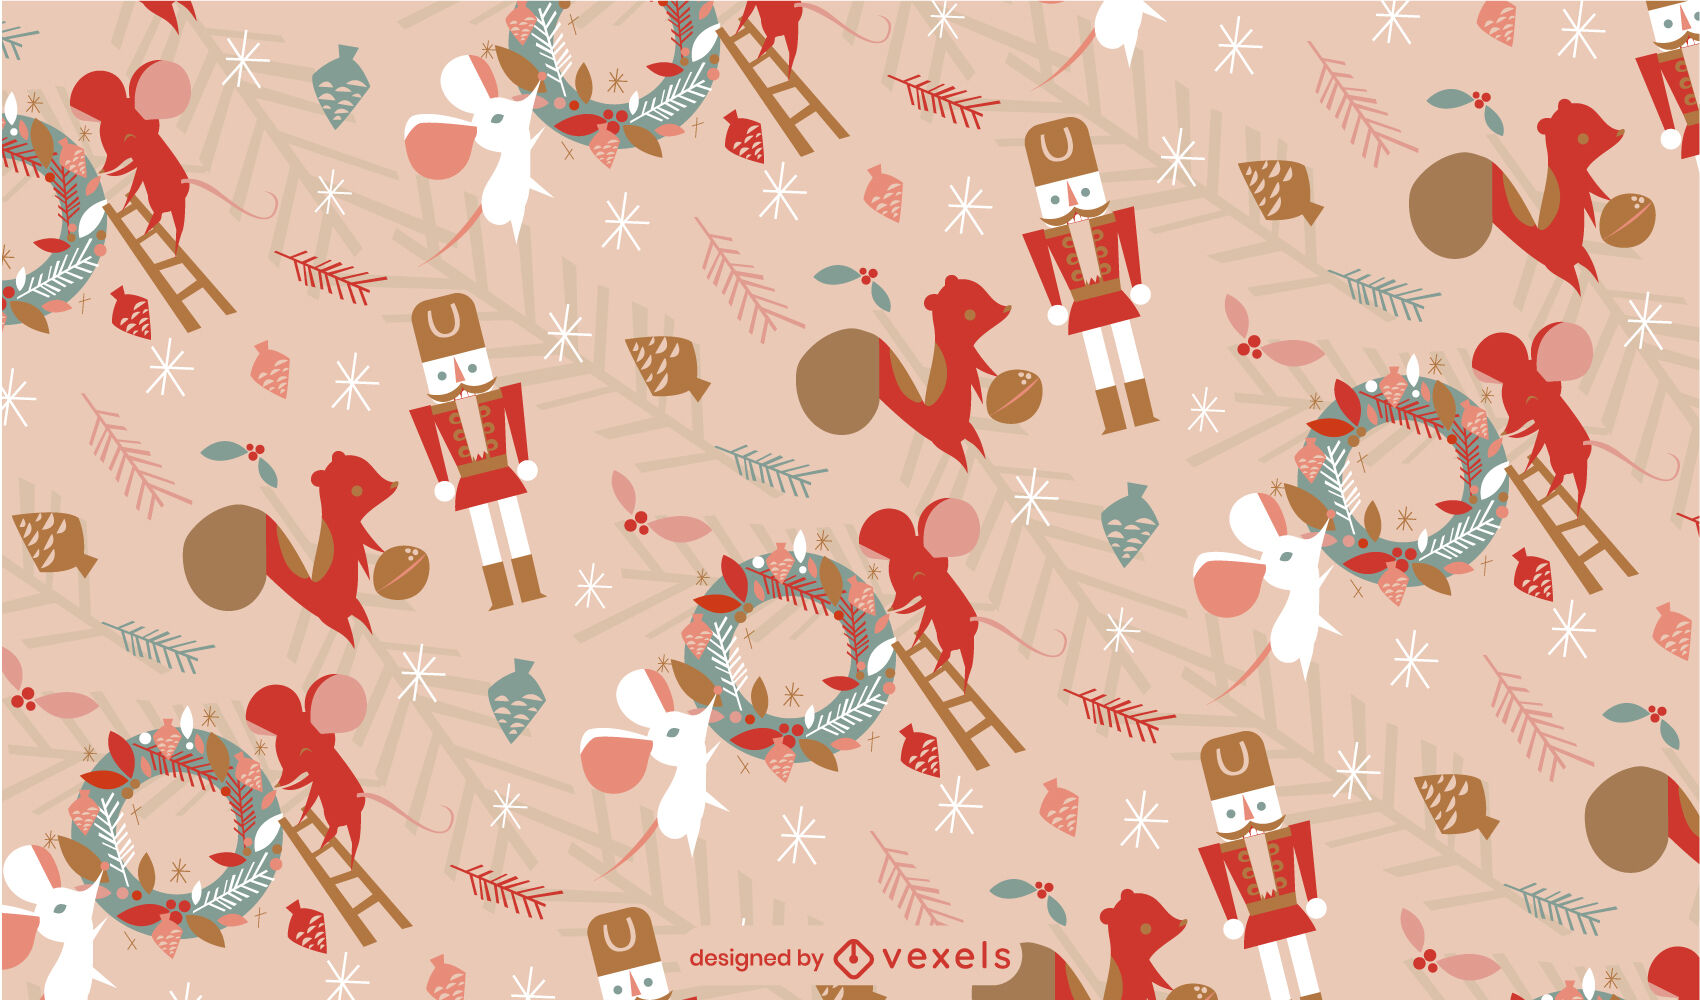 Christmas animal workers pattern design